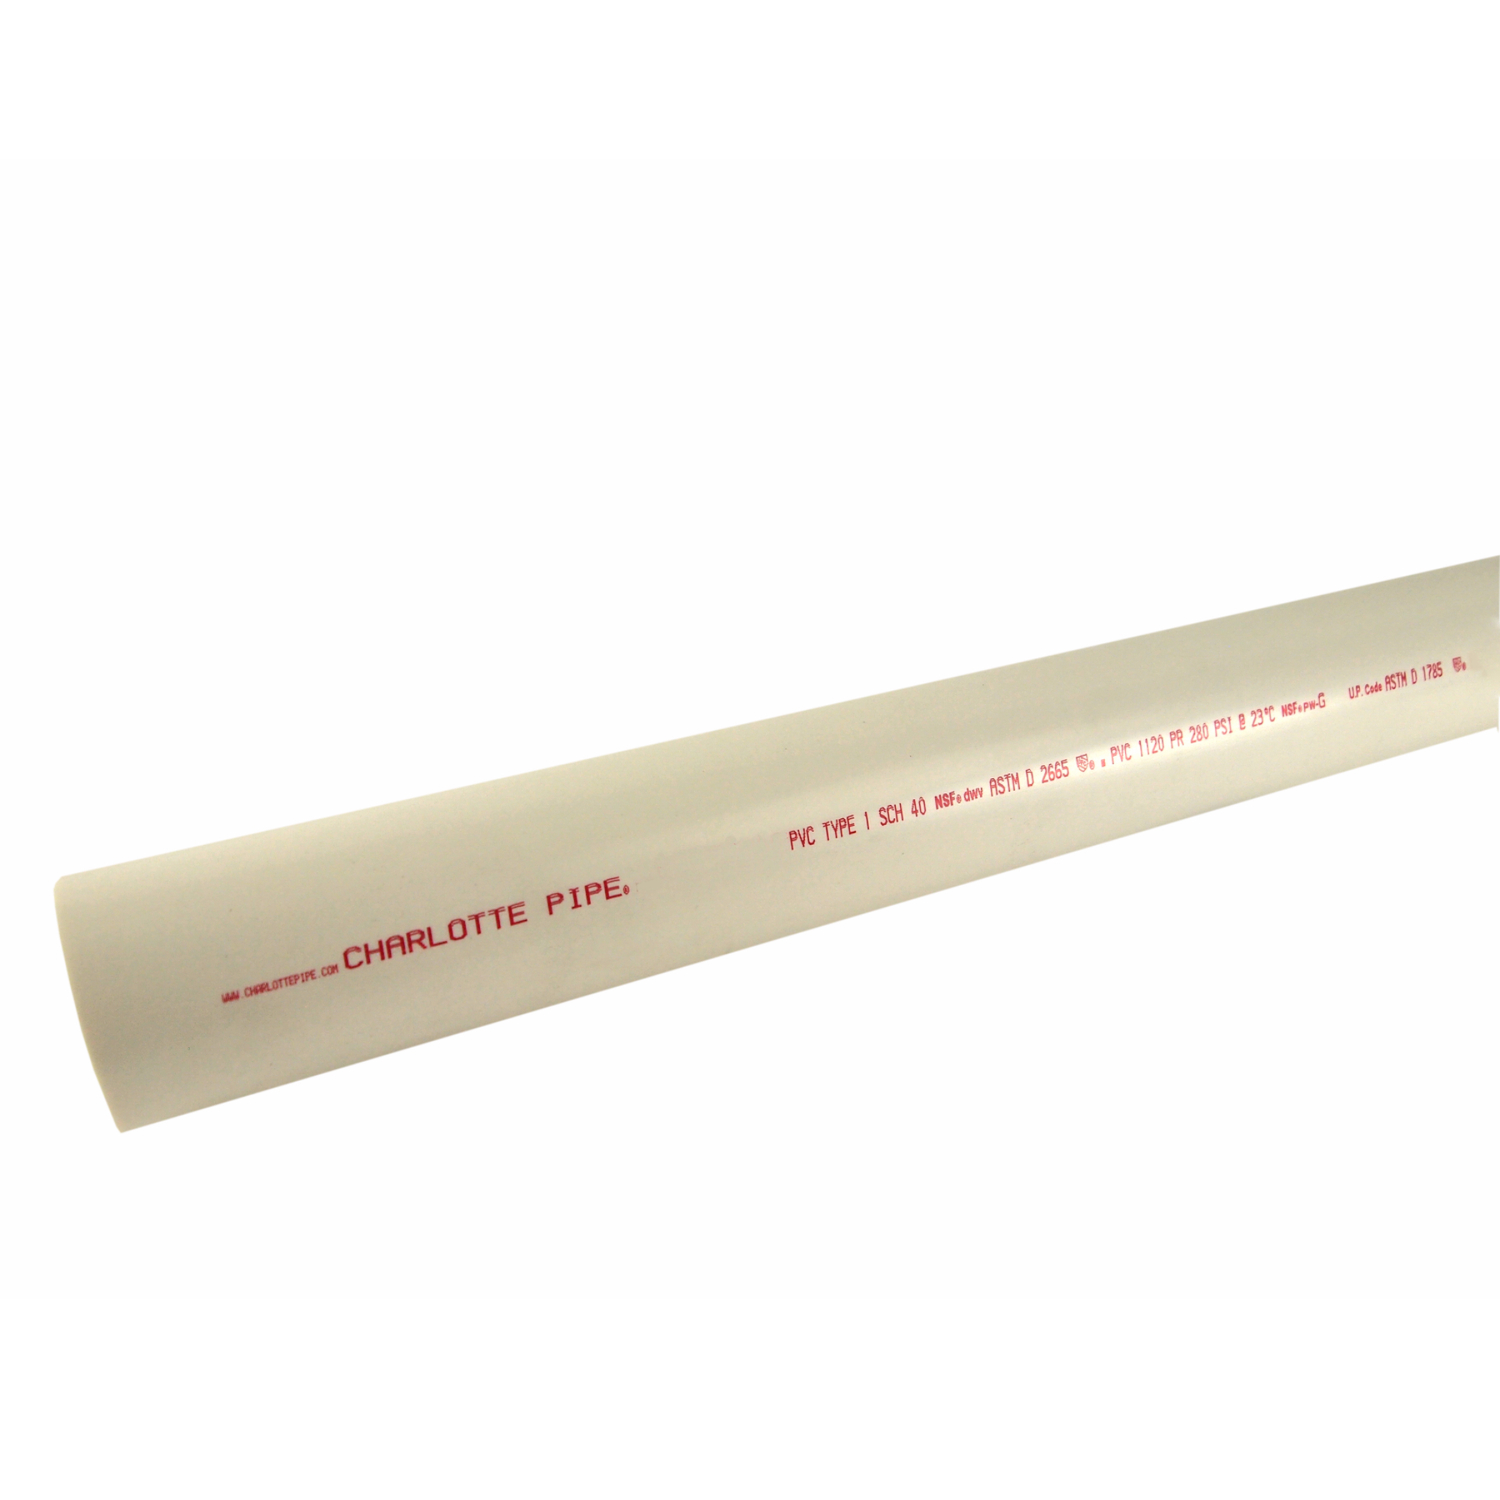 Cresline PVC Pipe 4 in. Dia. x 20 ft. L Plain End Schedule & Cresline PVC Pipe 4 in. Dia. x 20 ft. L Plain End Schedule 40 220 ...